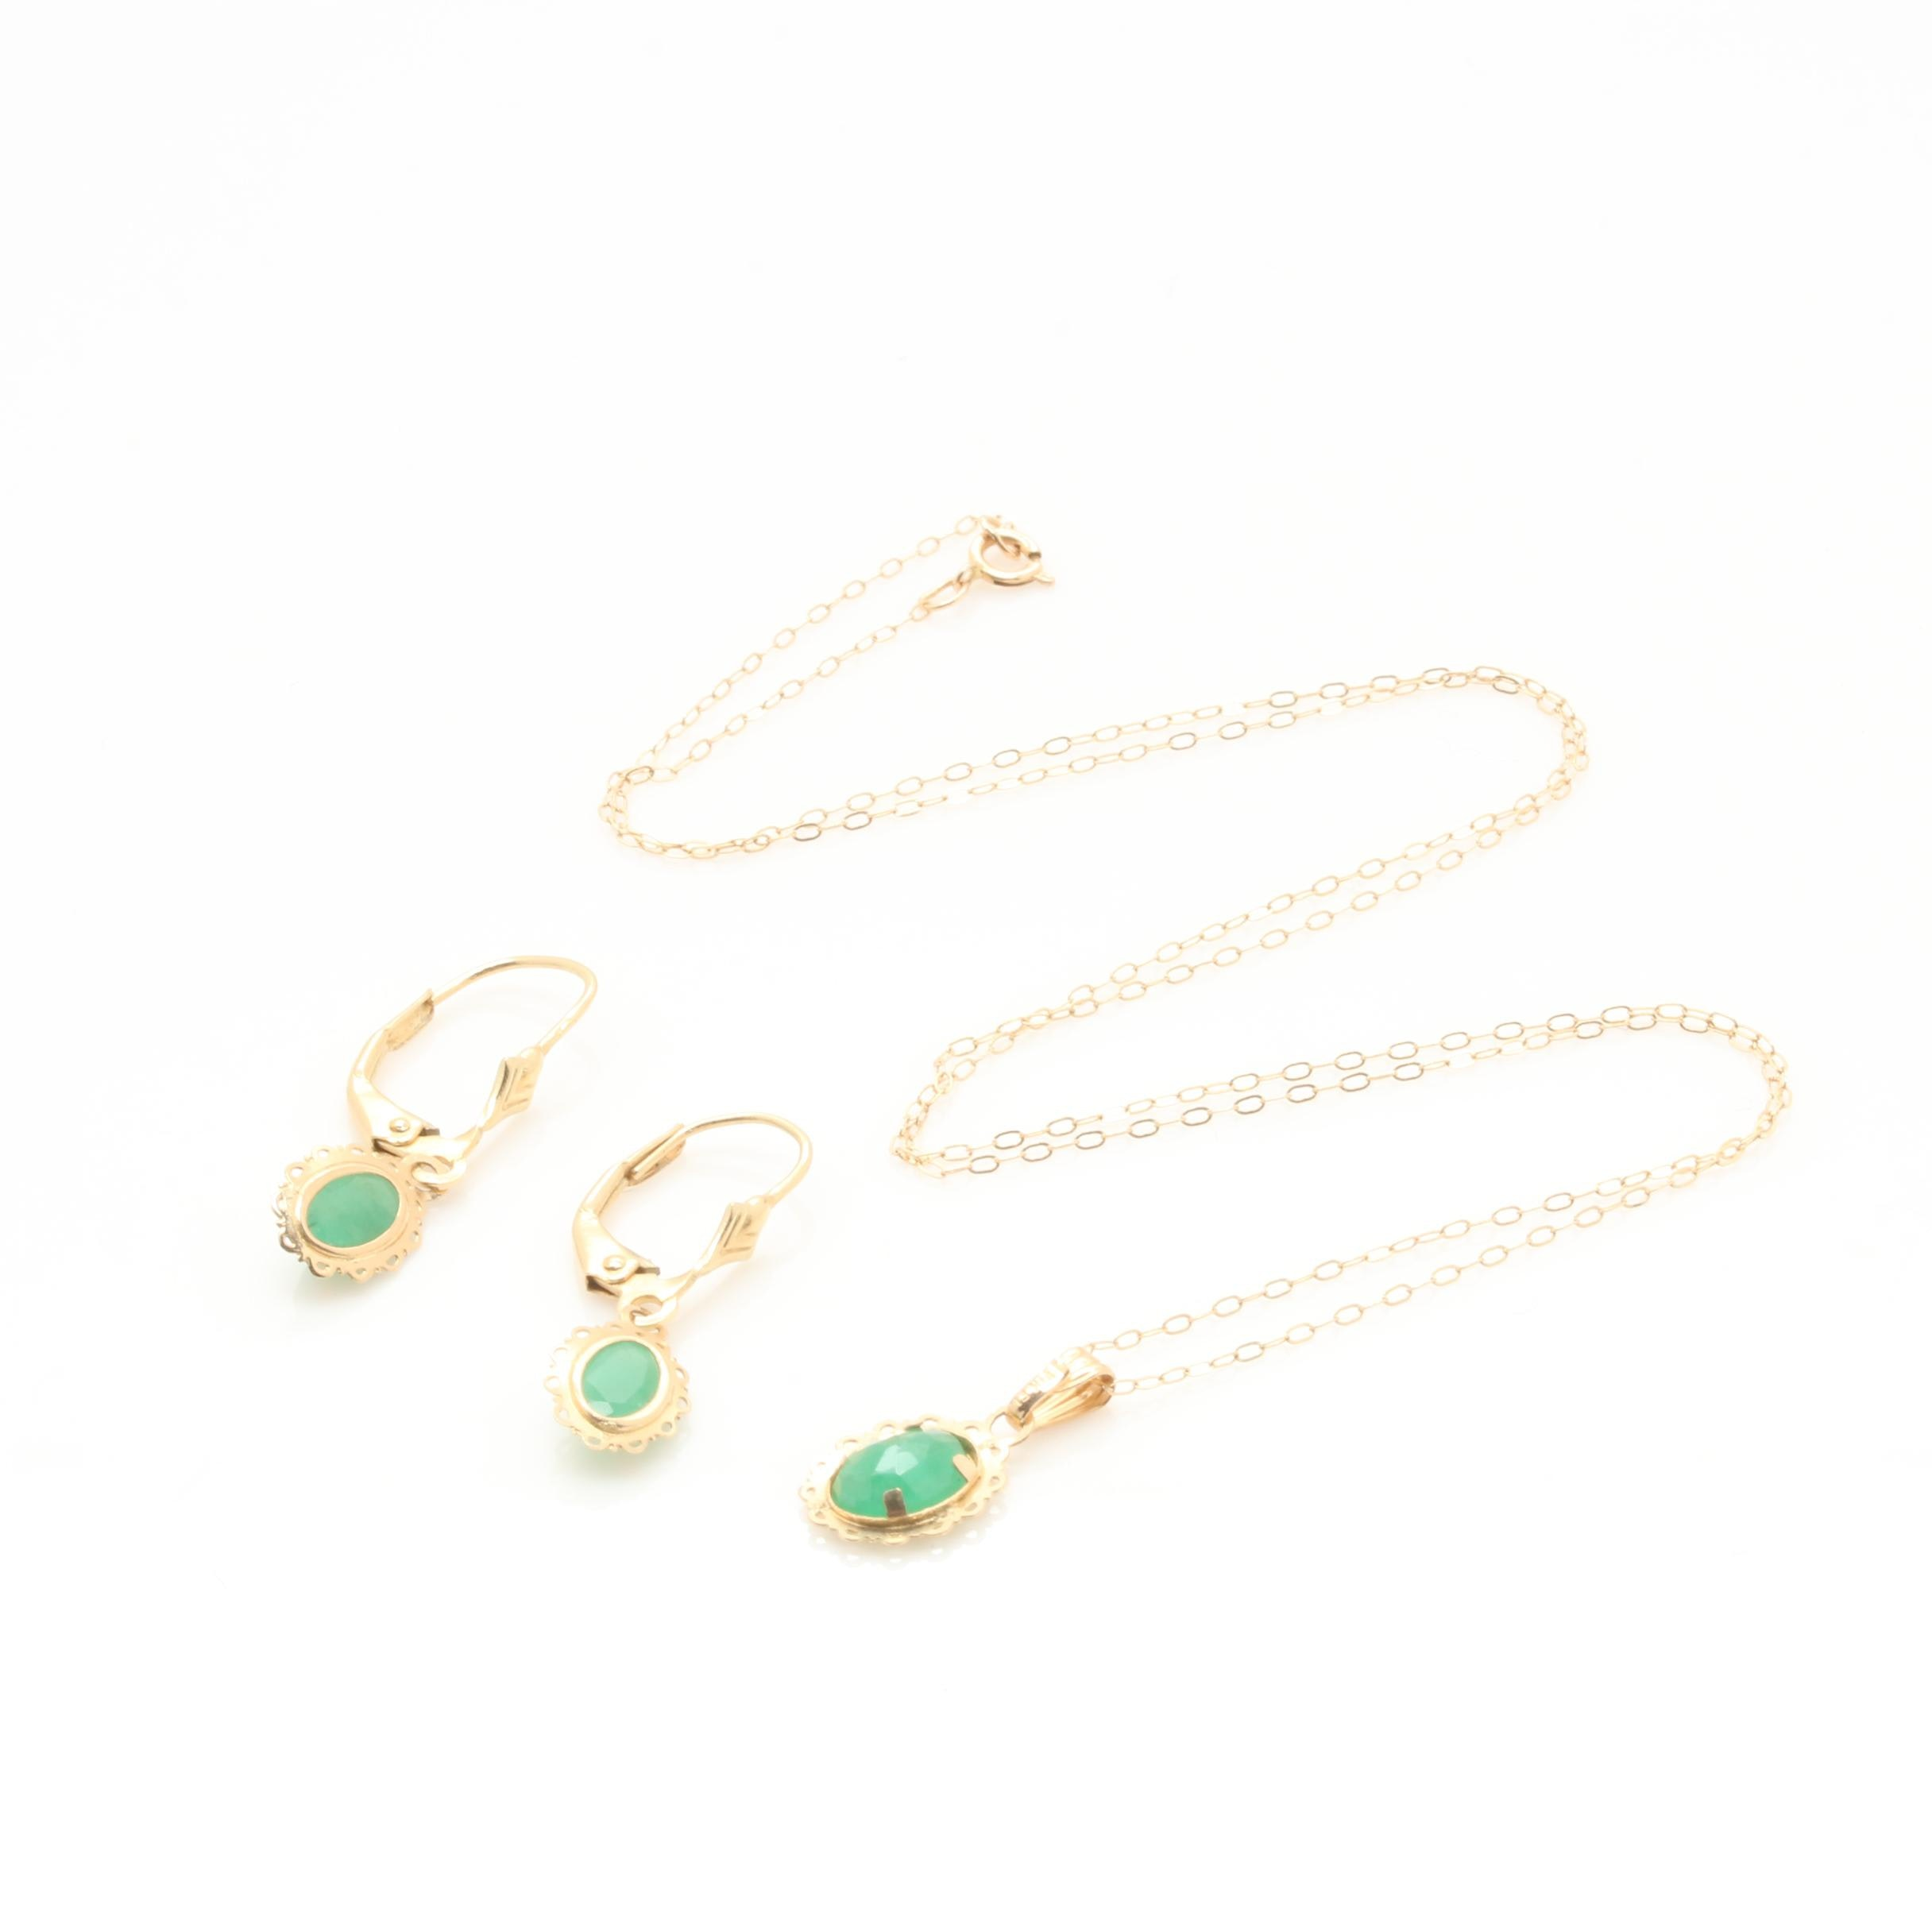 14K Yellow Gold Emerald Necklace and Earring Set